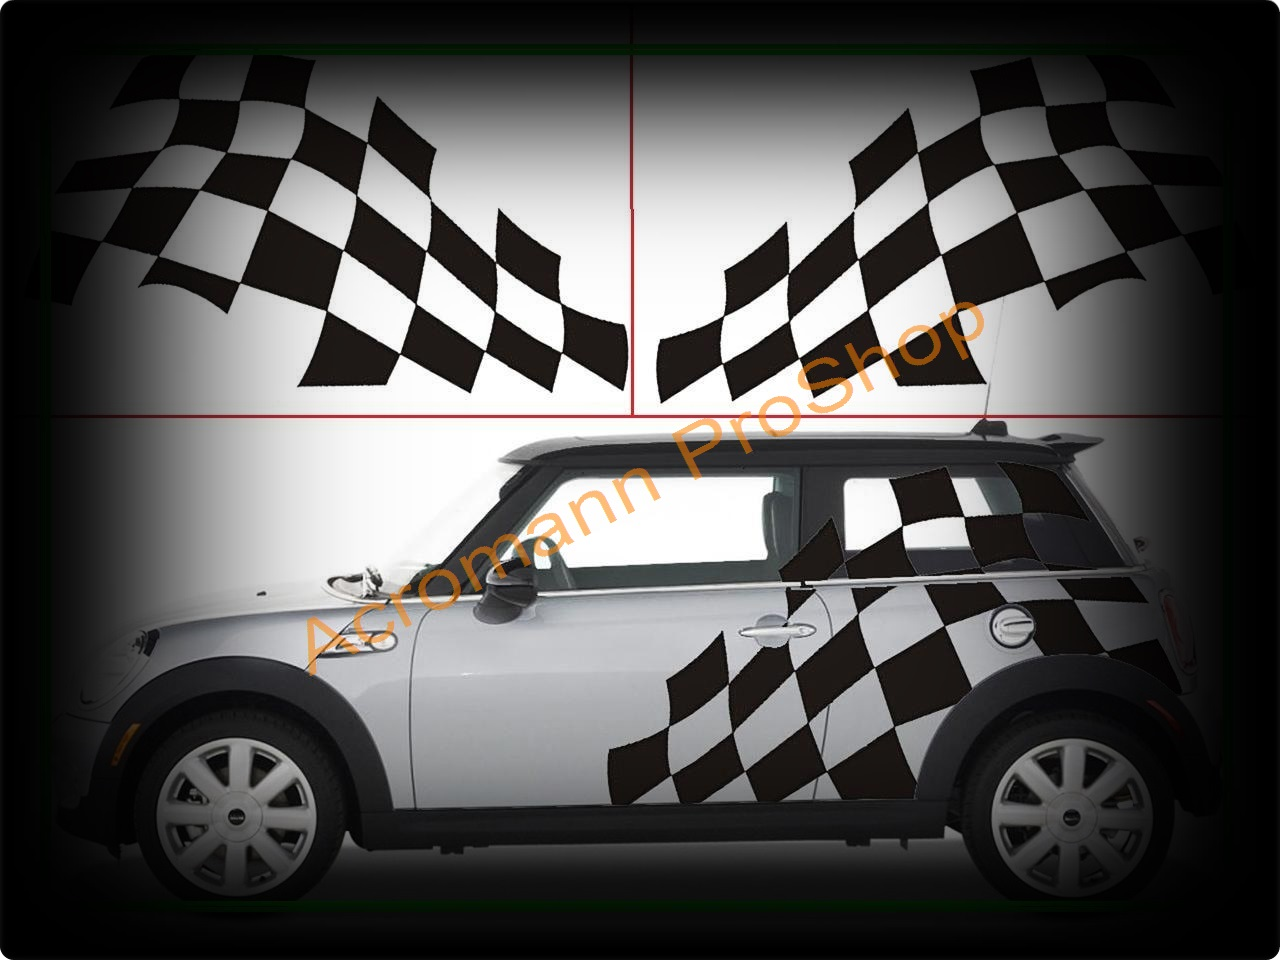 Mini Cooper Large Checkered Flag Side Decal x 1 pair (LHS & RHS)